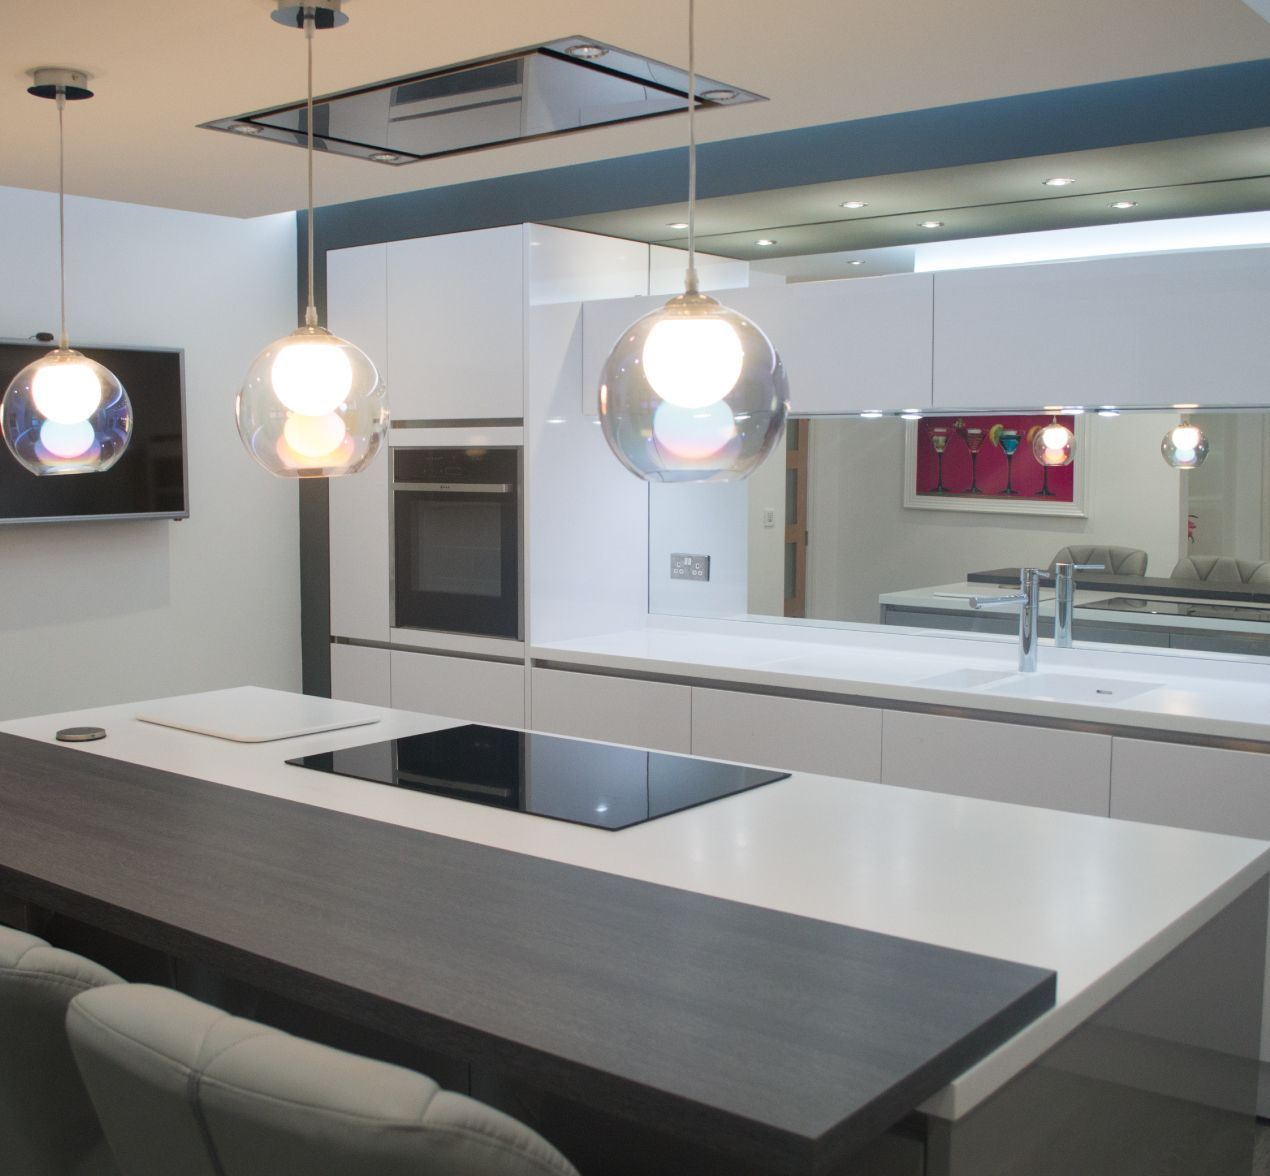 Kitchen Design Centre Hollinwood Oldham Kitchen Showroom Kitchen Design Centre Oldham